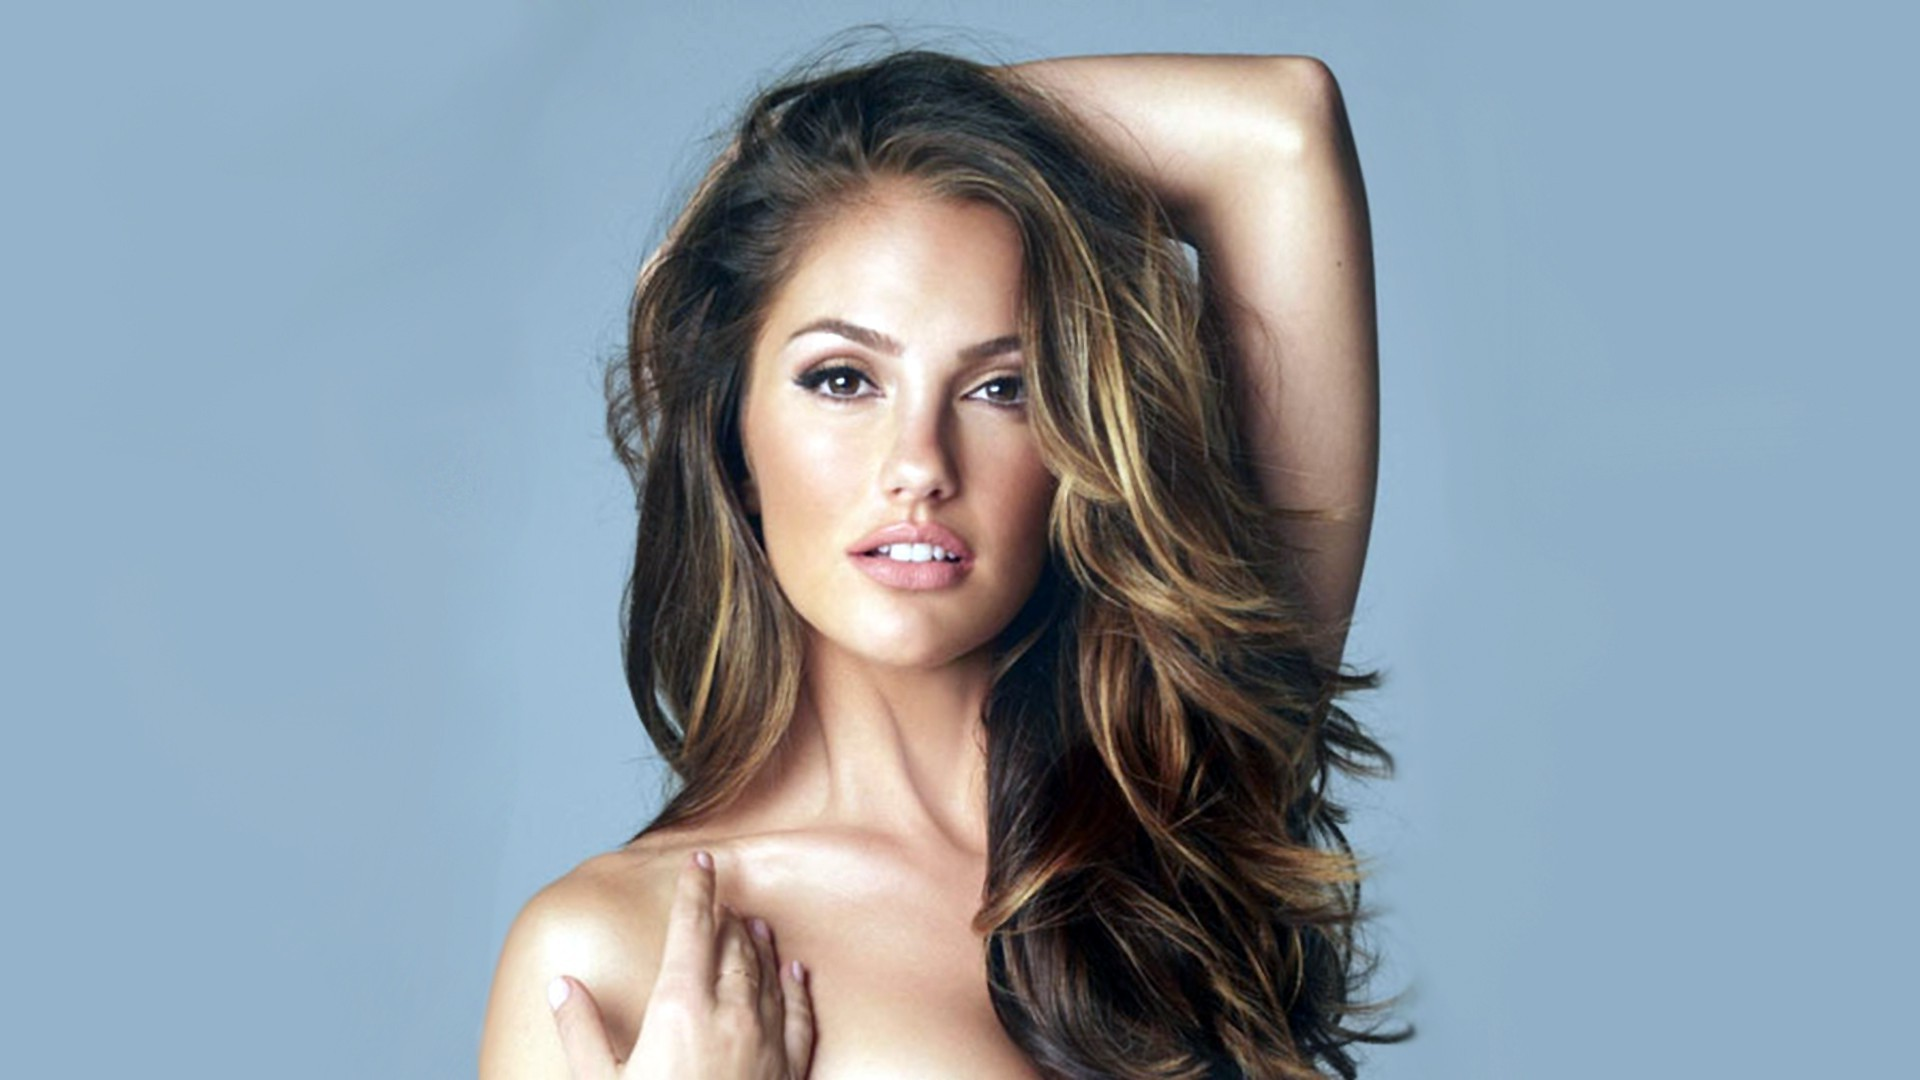 Minka Kelly dating boyfriend career net worth wiki bio